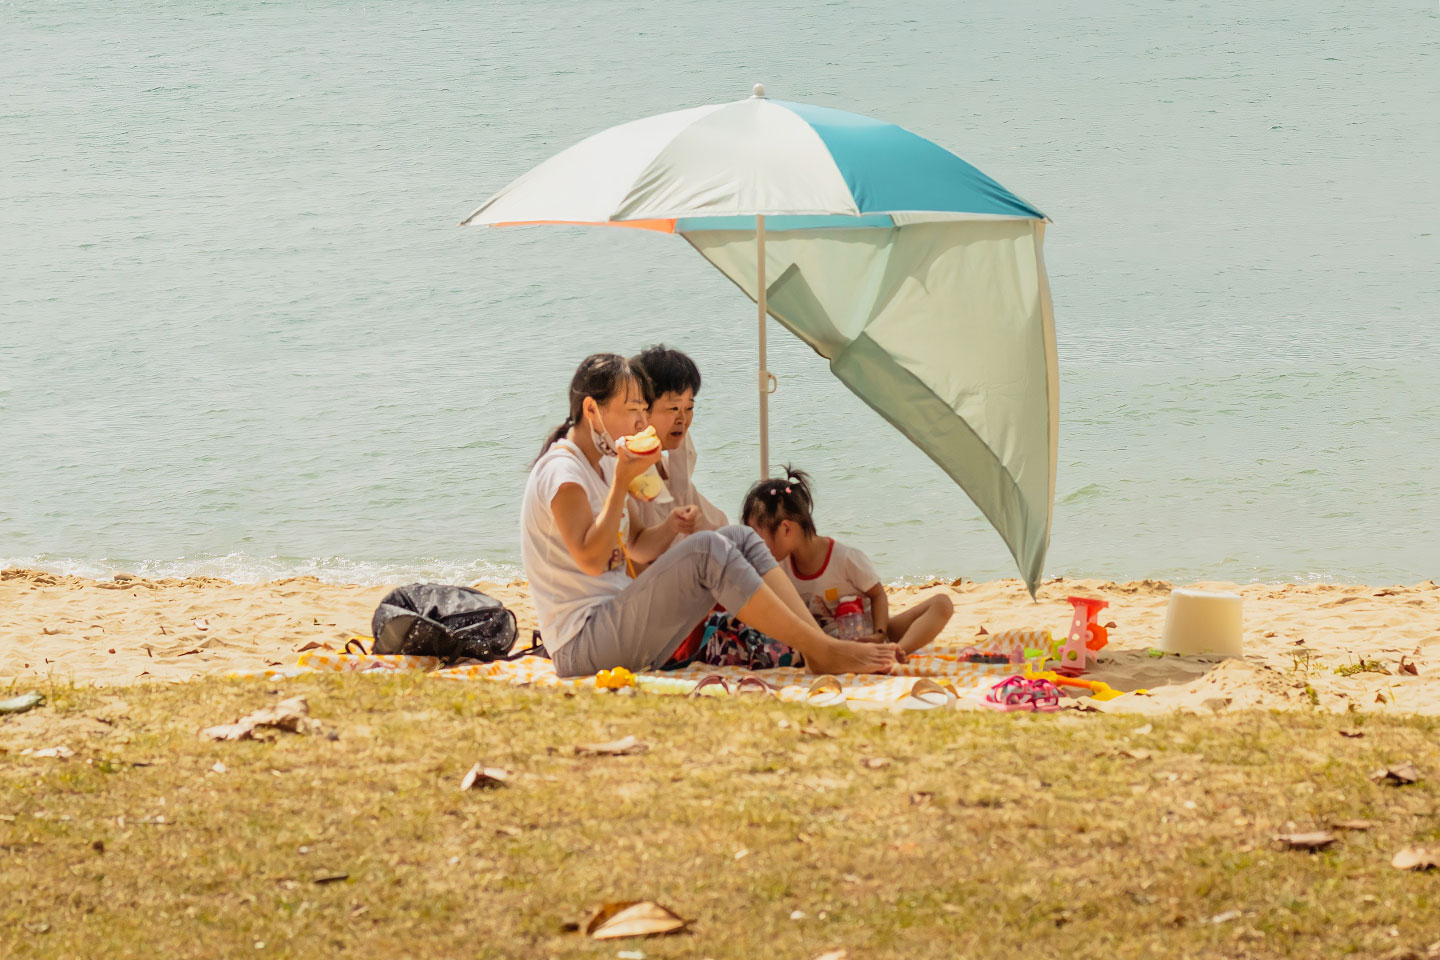 Family is eating under umbrella at the beach